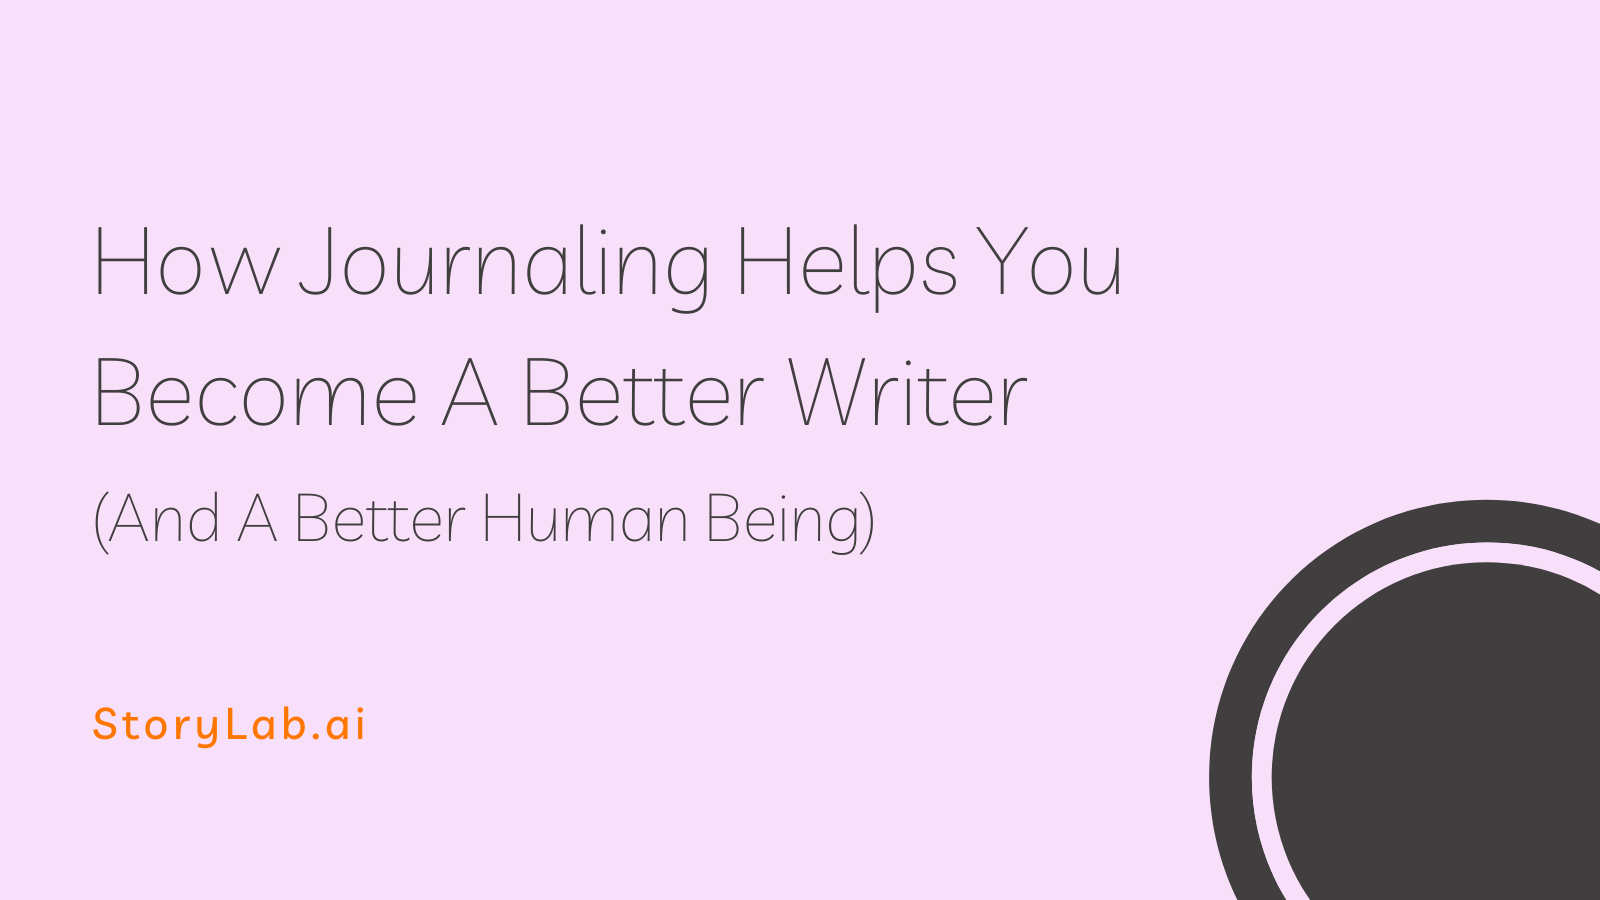 How Journaling Helps You Become A Better Writer